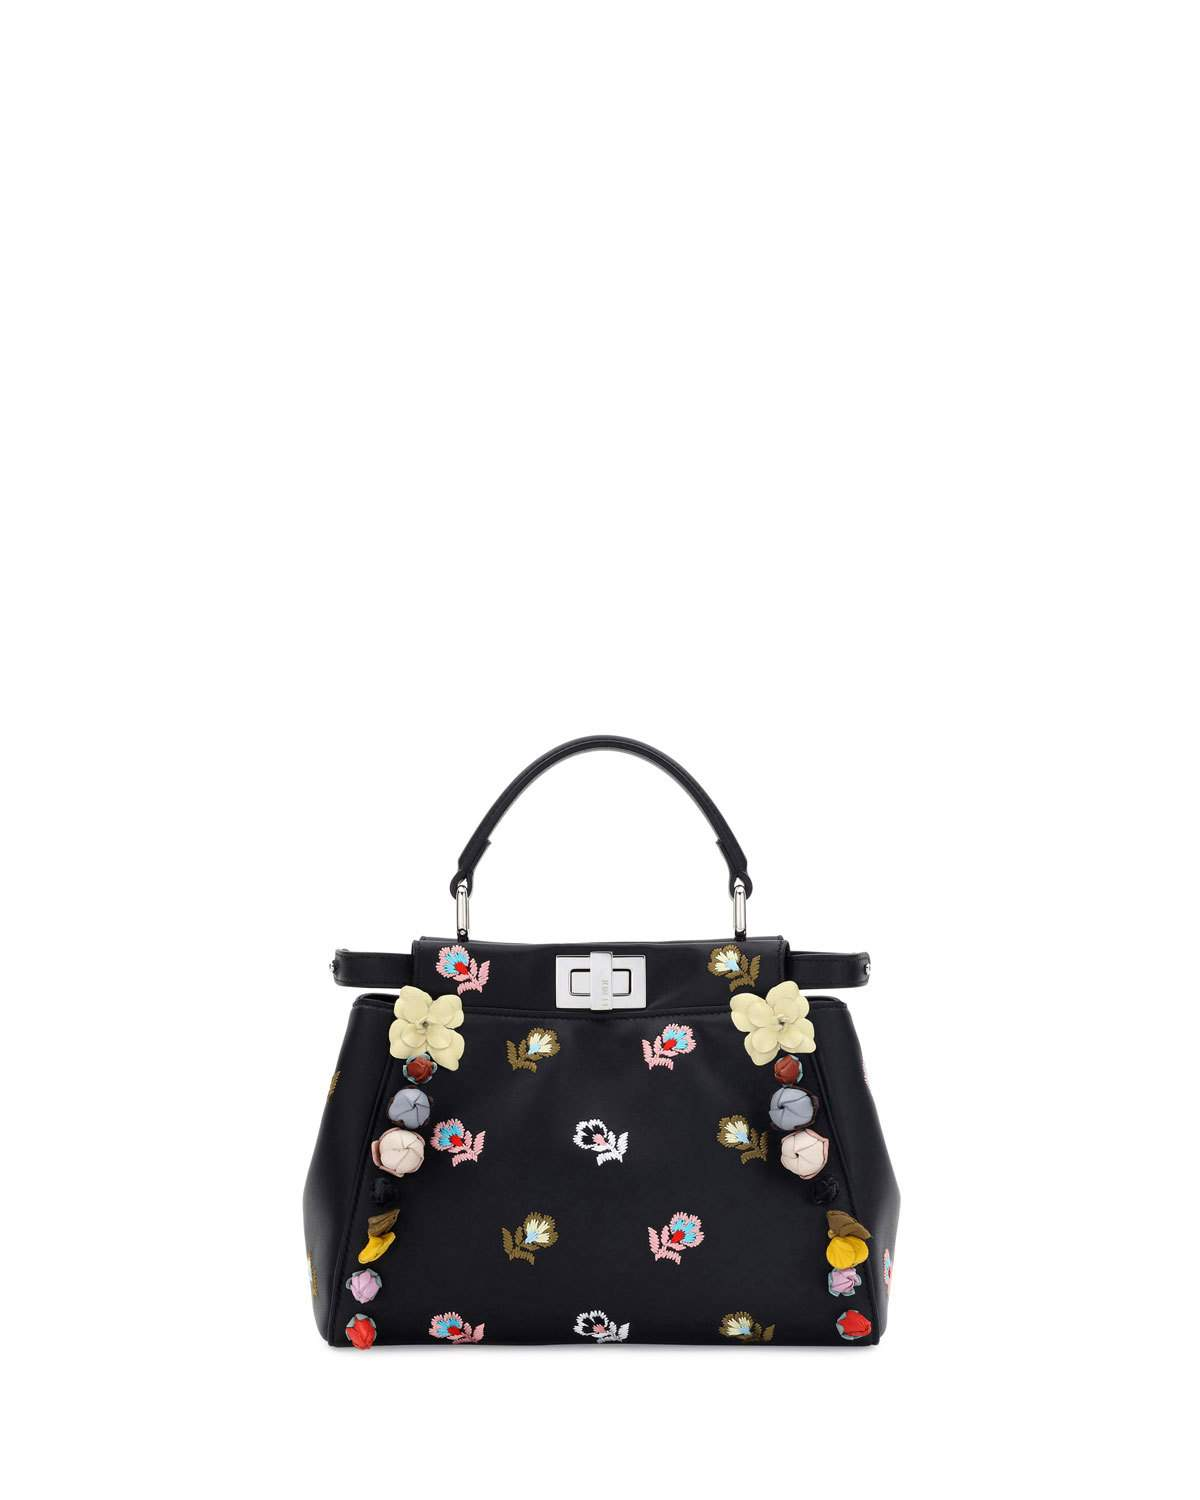 6de929bc Fendi Resort 2017 Bag Collection Featuring Floral Bags | Spotted Fashion